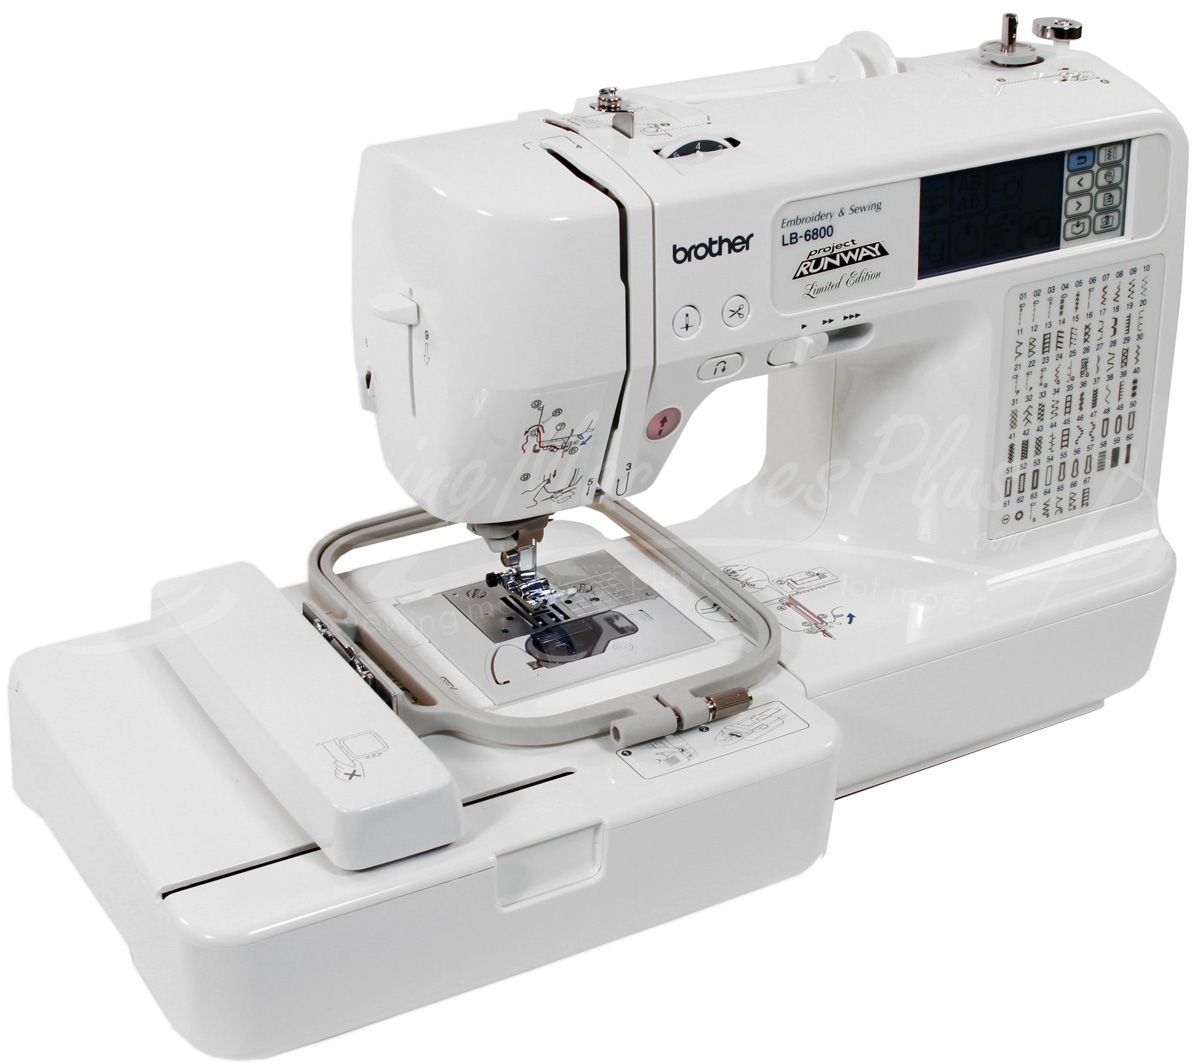 lb6800 sewing embroidery machine